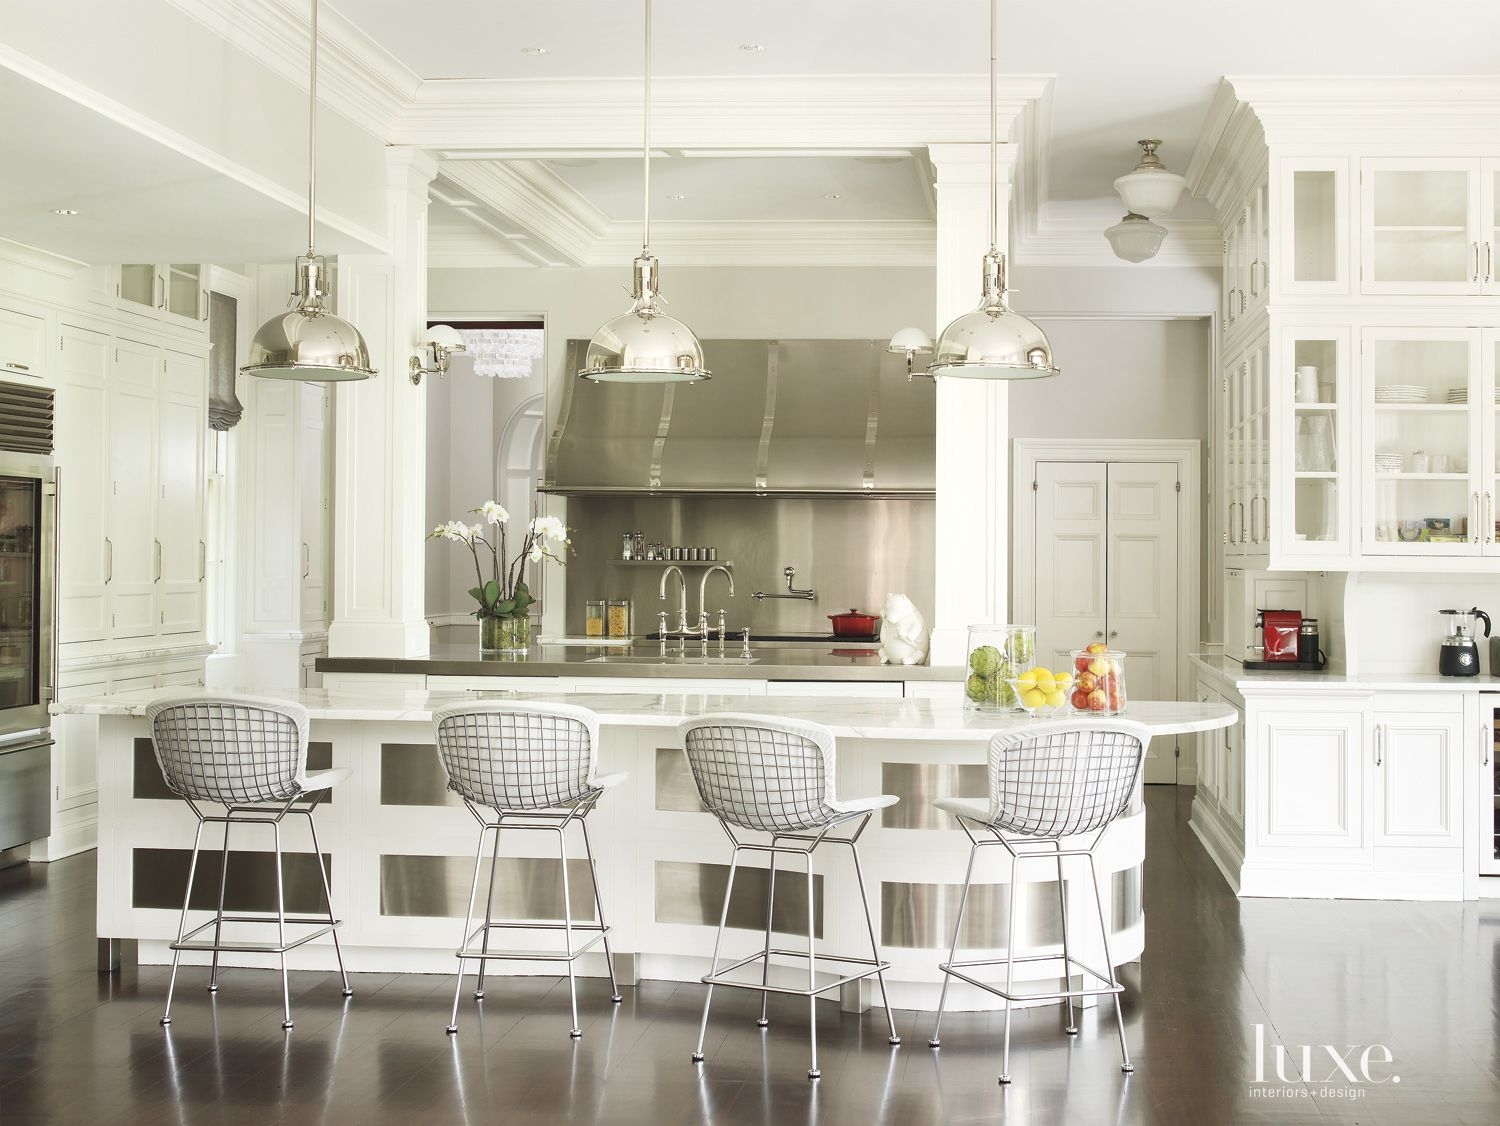 Contemporary White Kitchen with Retro Light Fixtures